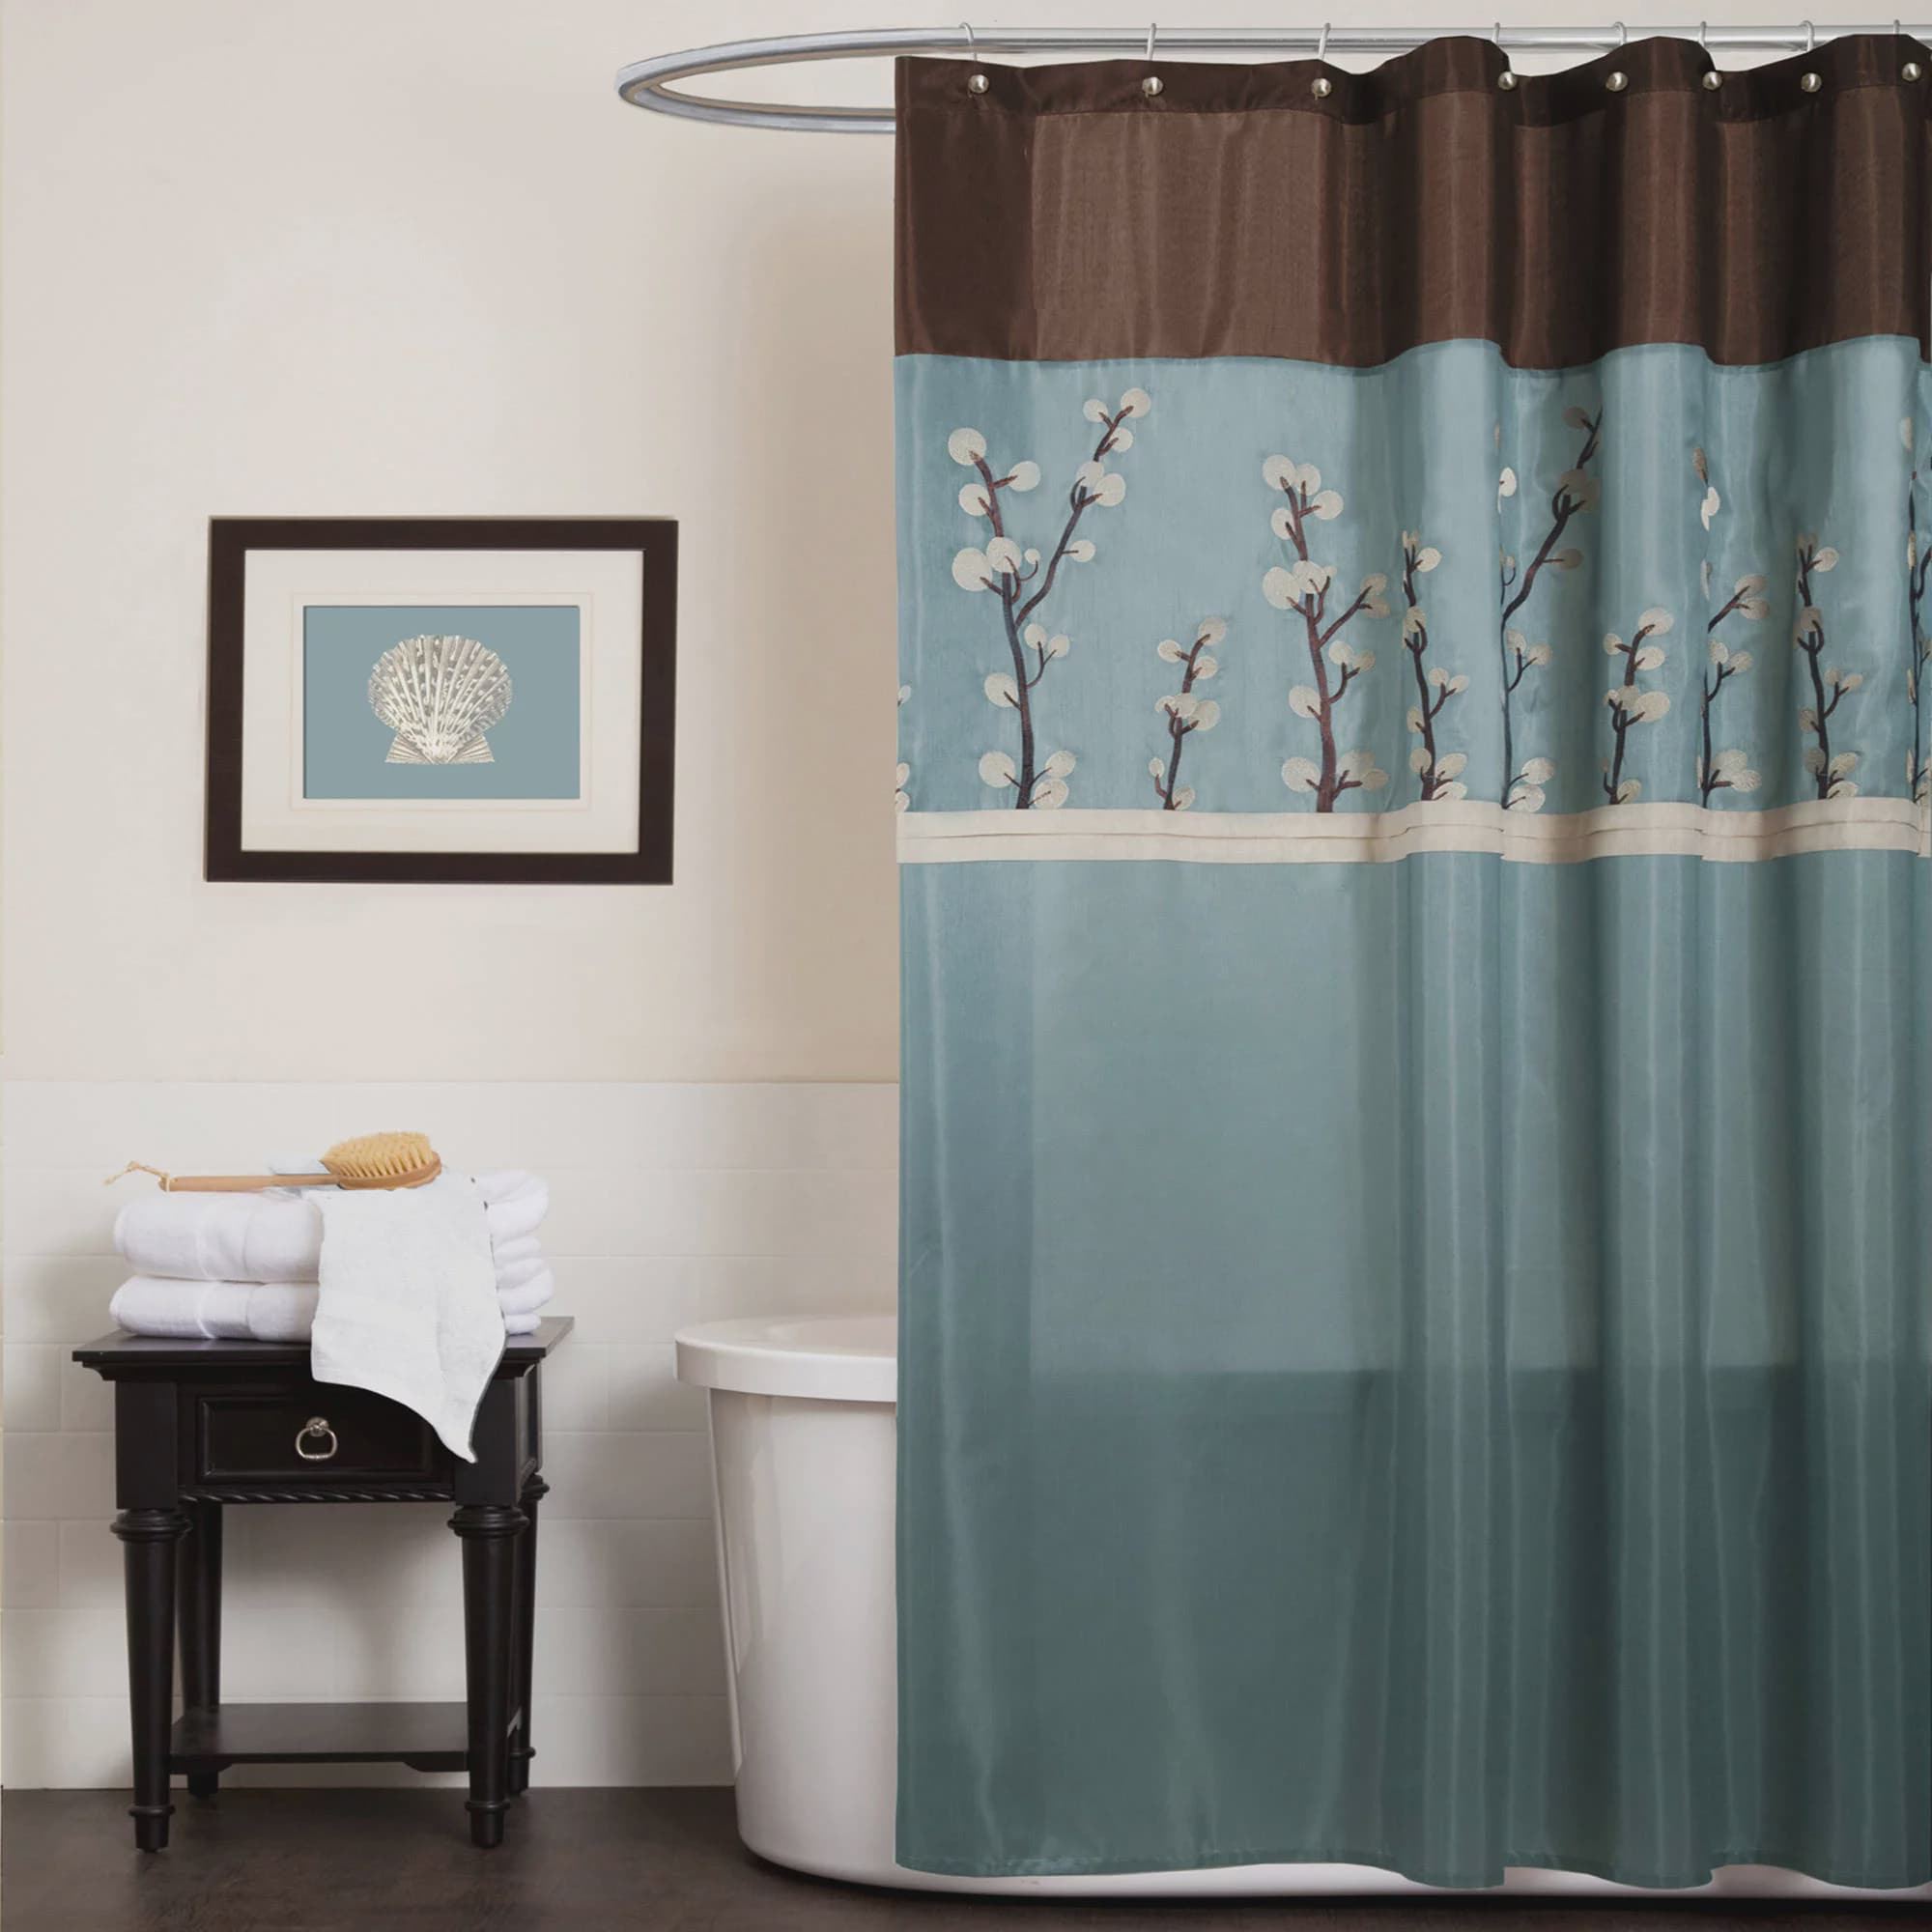 Bath - Dark teal bath rug for bathroom decorating ideas